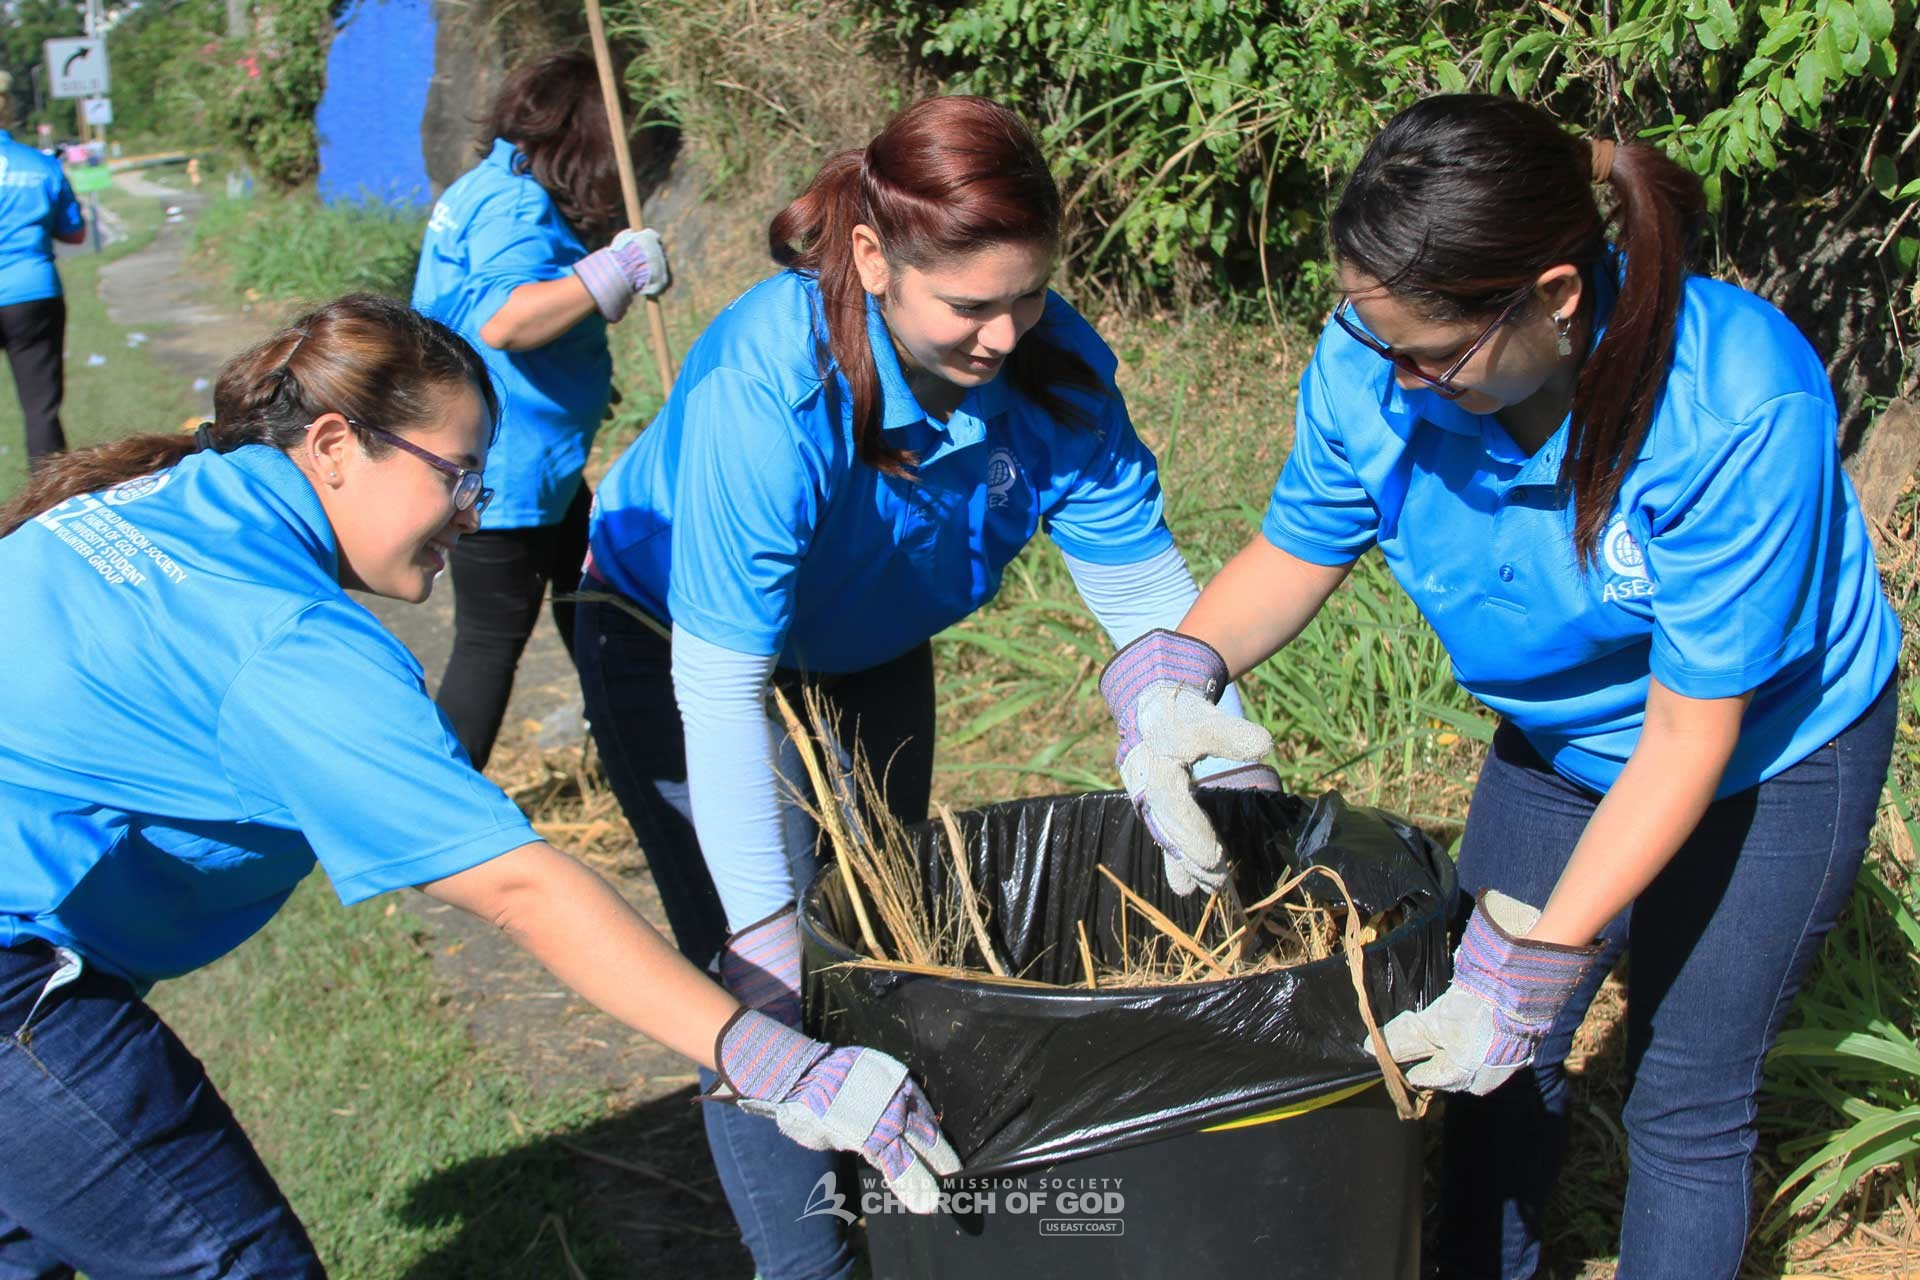 ASEZ, wmscog, world mission society church of god, PR, Puerto Rico, Guaynabo, cleanup, reduce crime, volunteerism, university